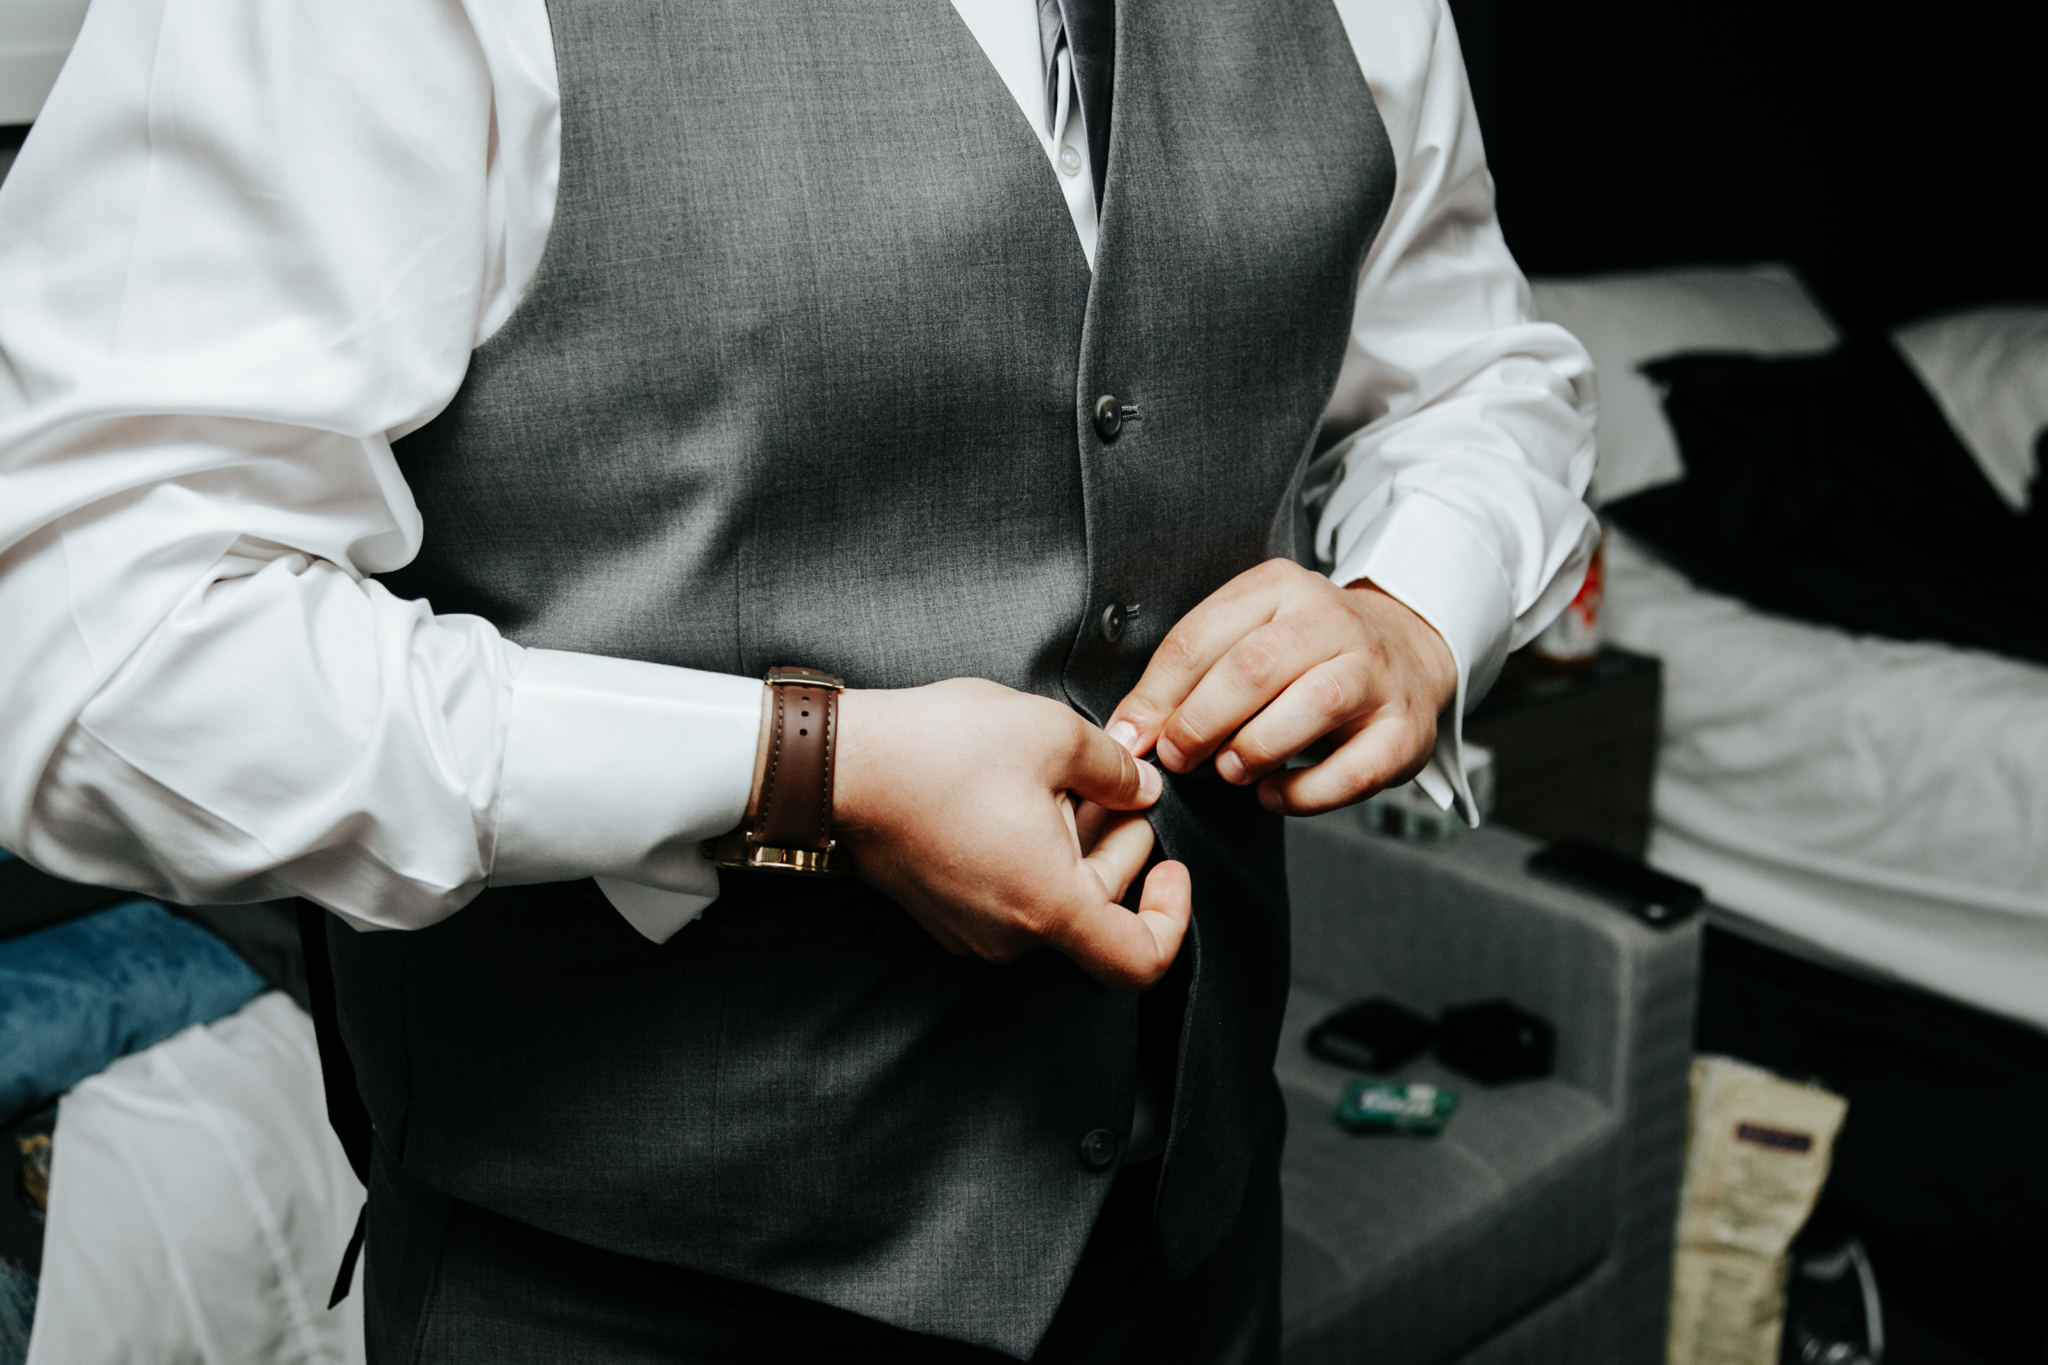 lethbridge-wedding-photographer-love-and-be-loved-photography-trent-danielle-galt-reception-picture-image-photo-13.jpg